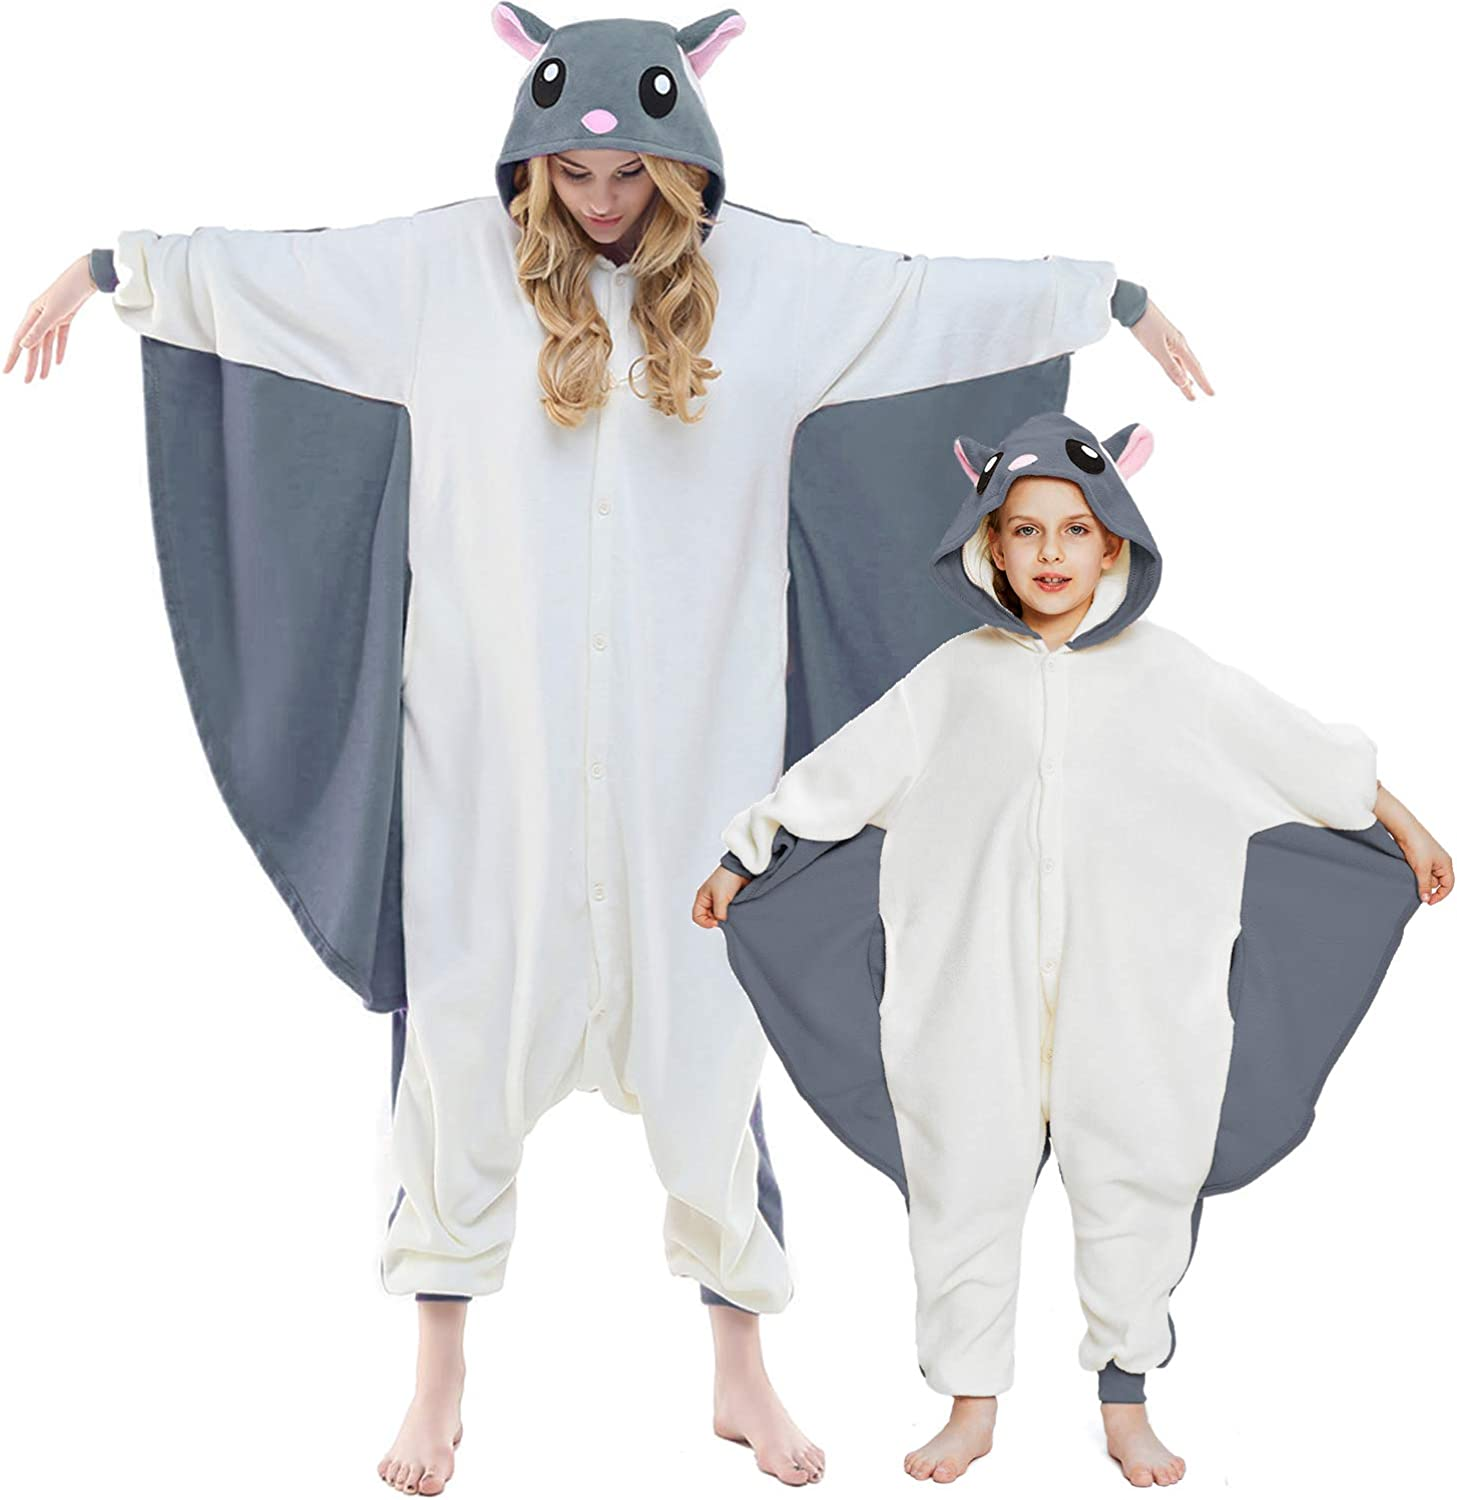 NEWCOSPLAY Unisex Adult 2021 model Kid Max 73% OFF Flying One Plush Squirrel Pajamas- P